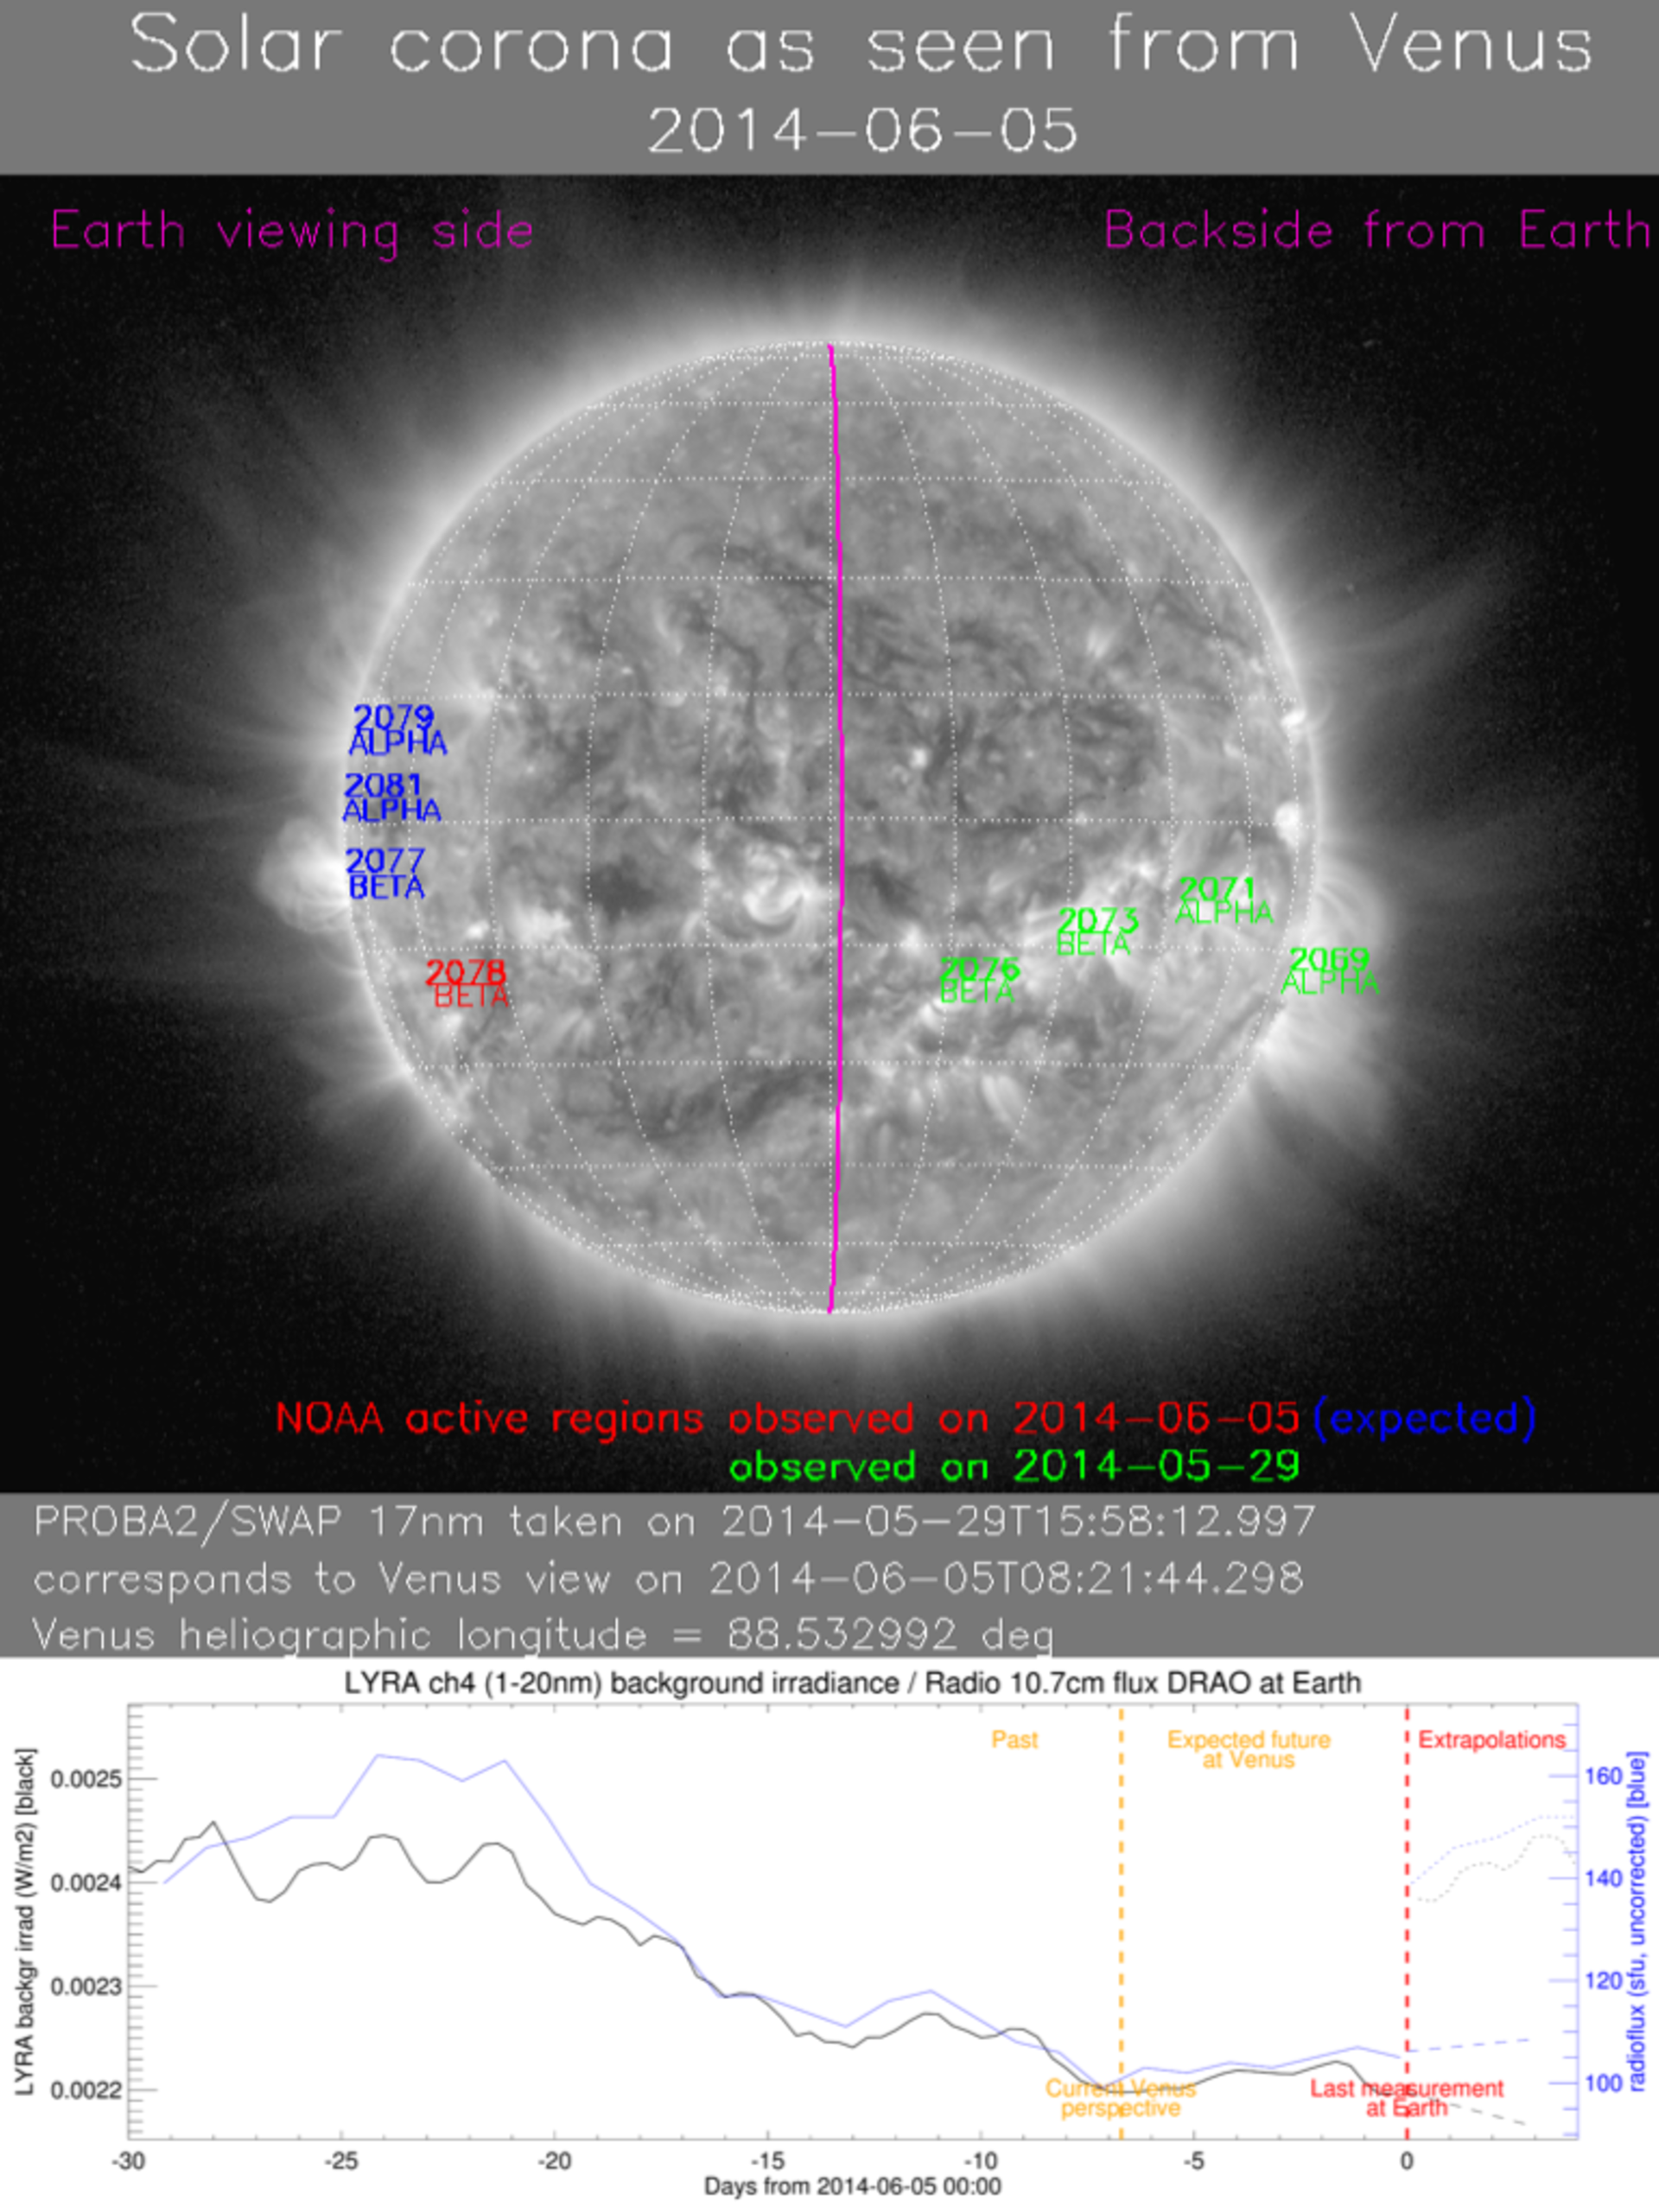 Space weather report for Venus 5 June 2014